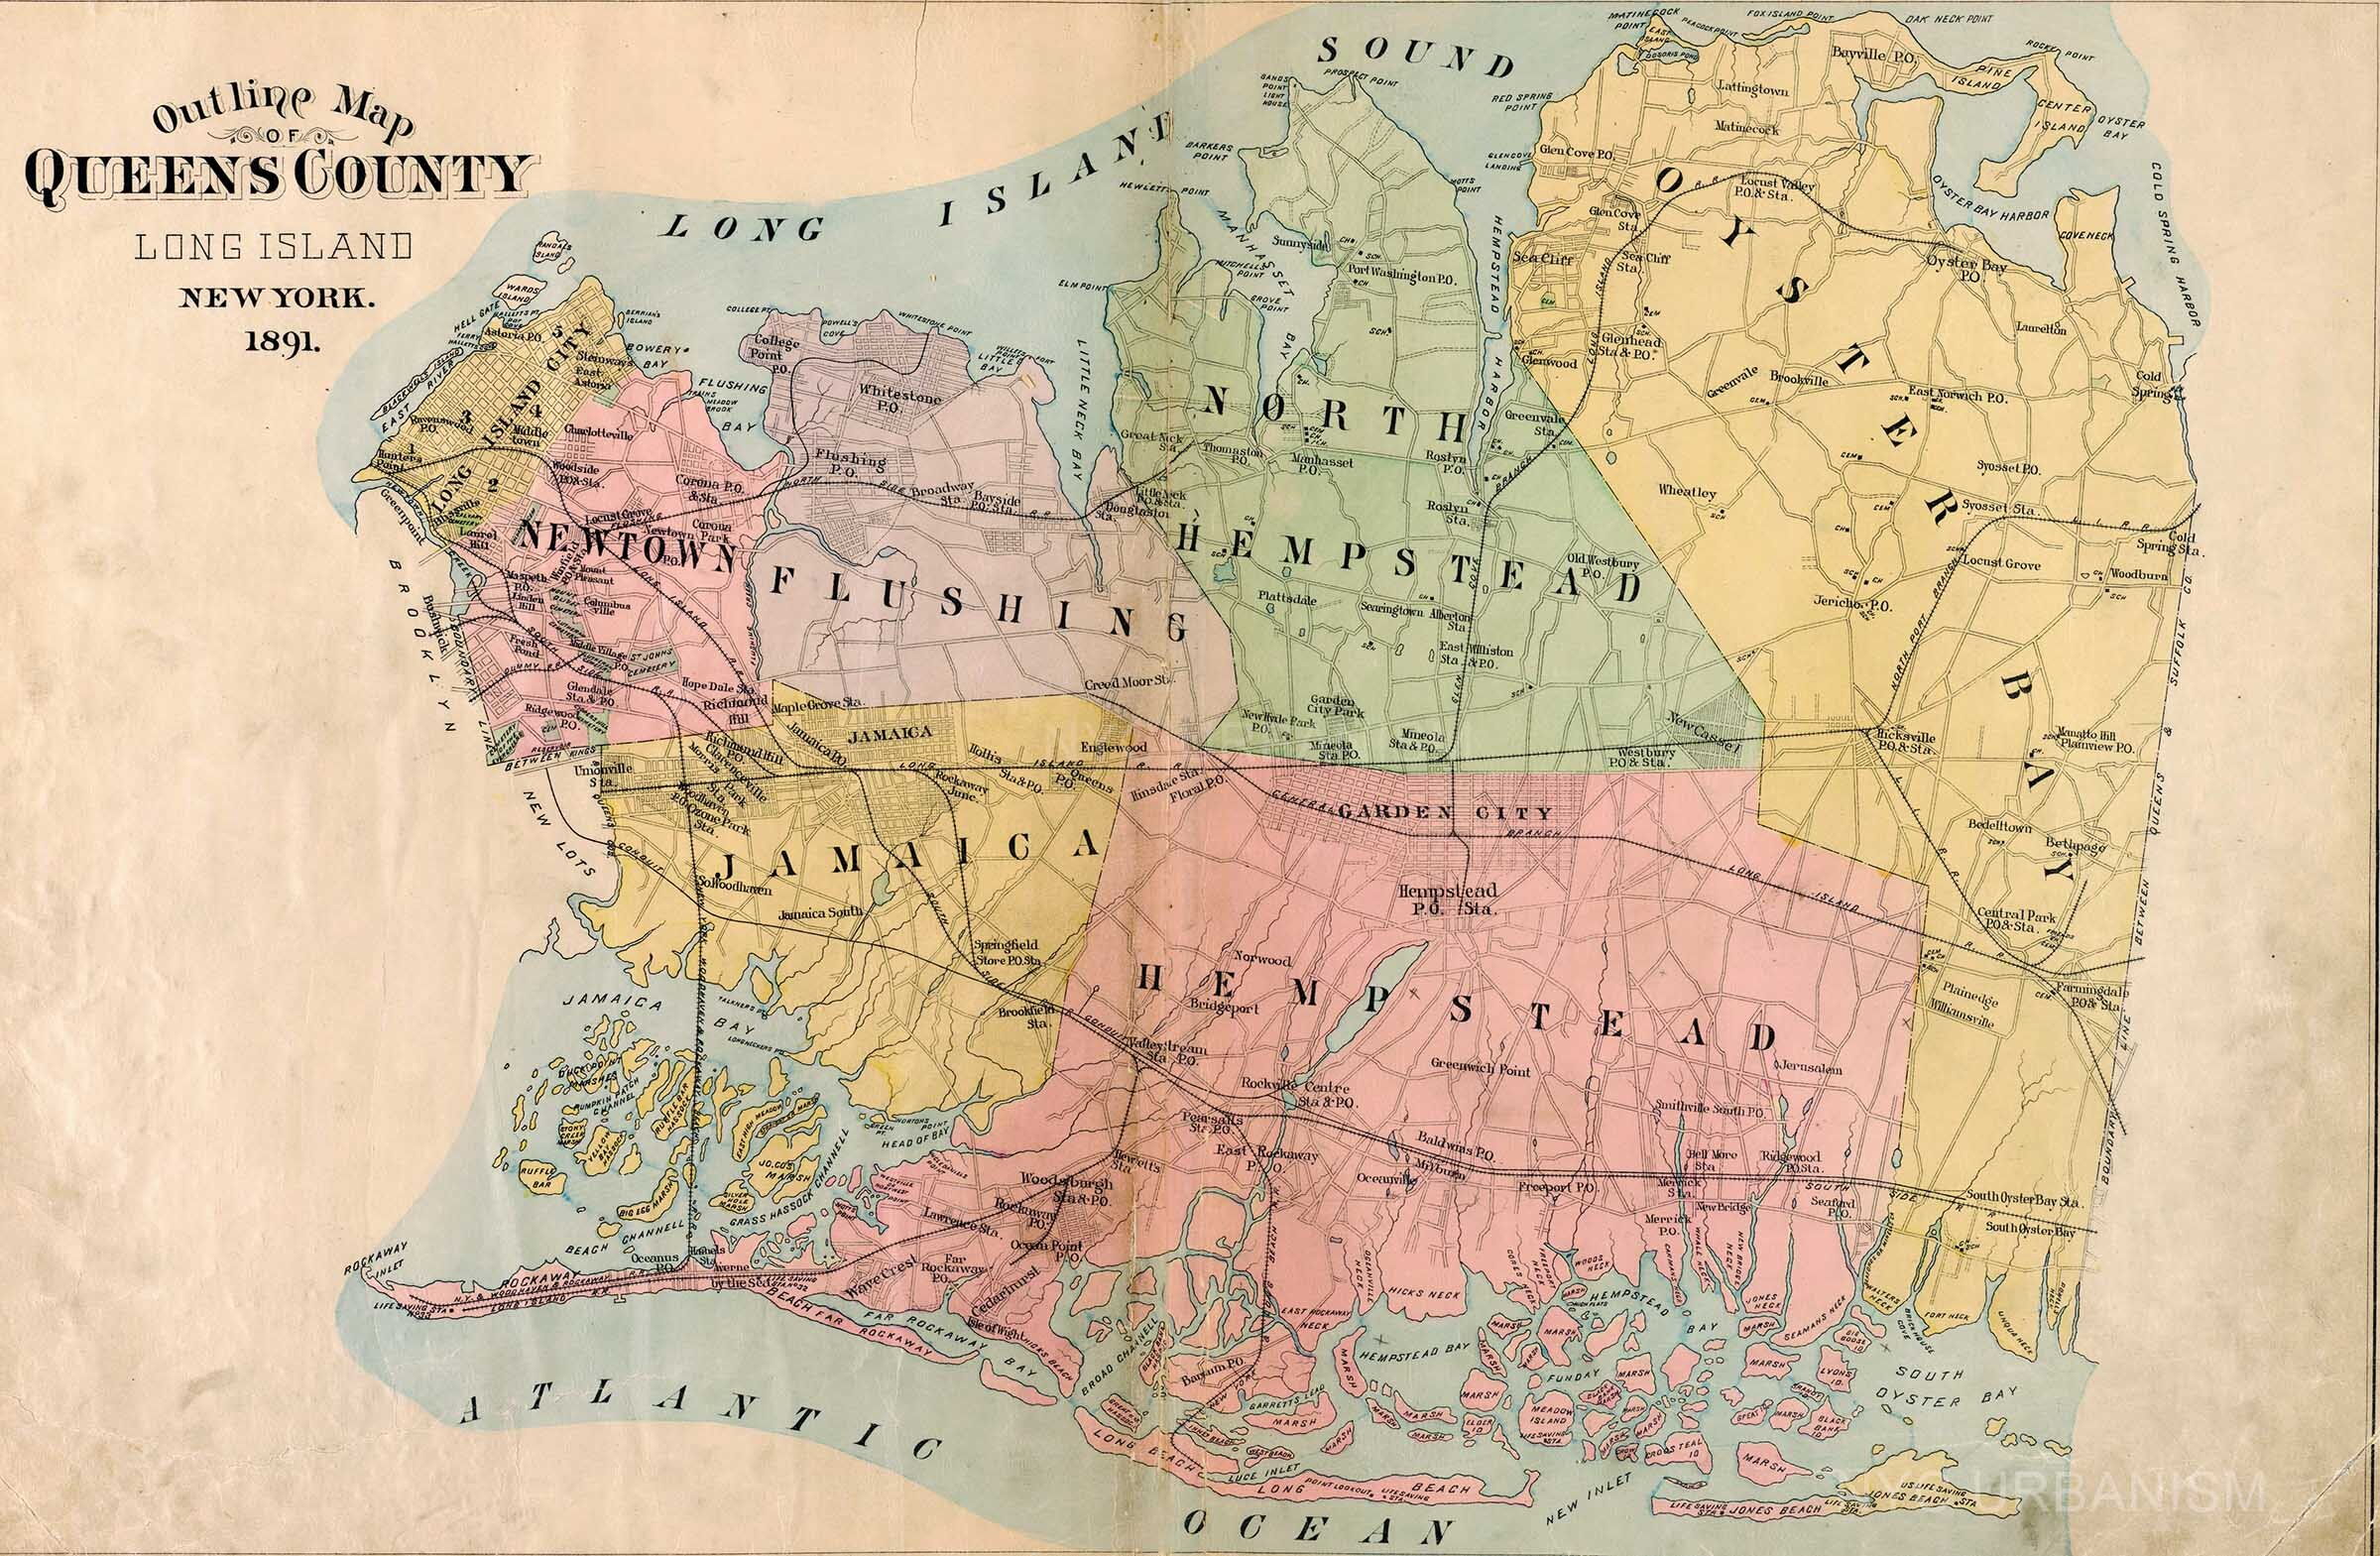 Queens County map, 1891.  Purchase a print here .